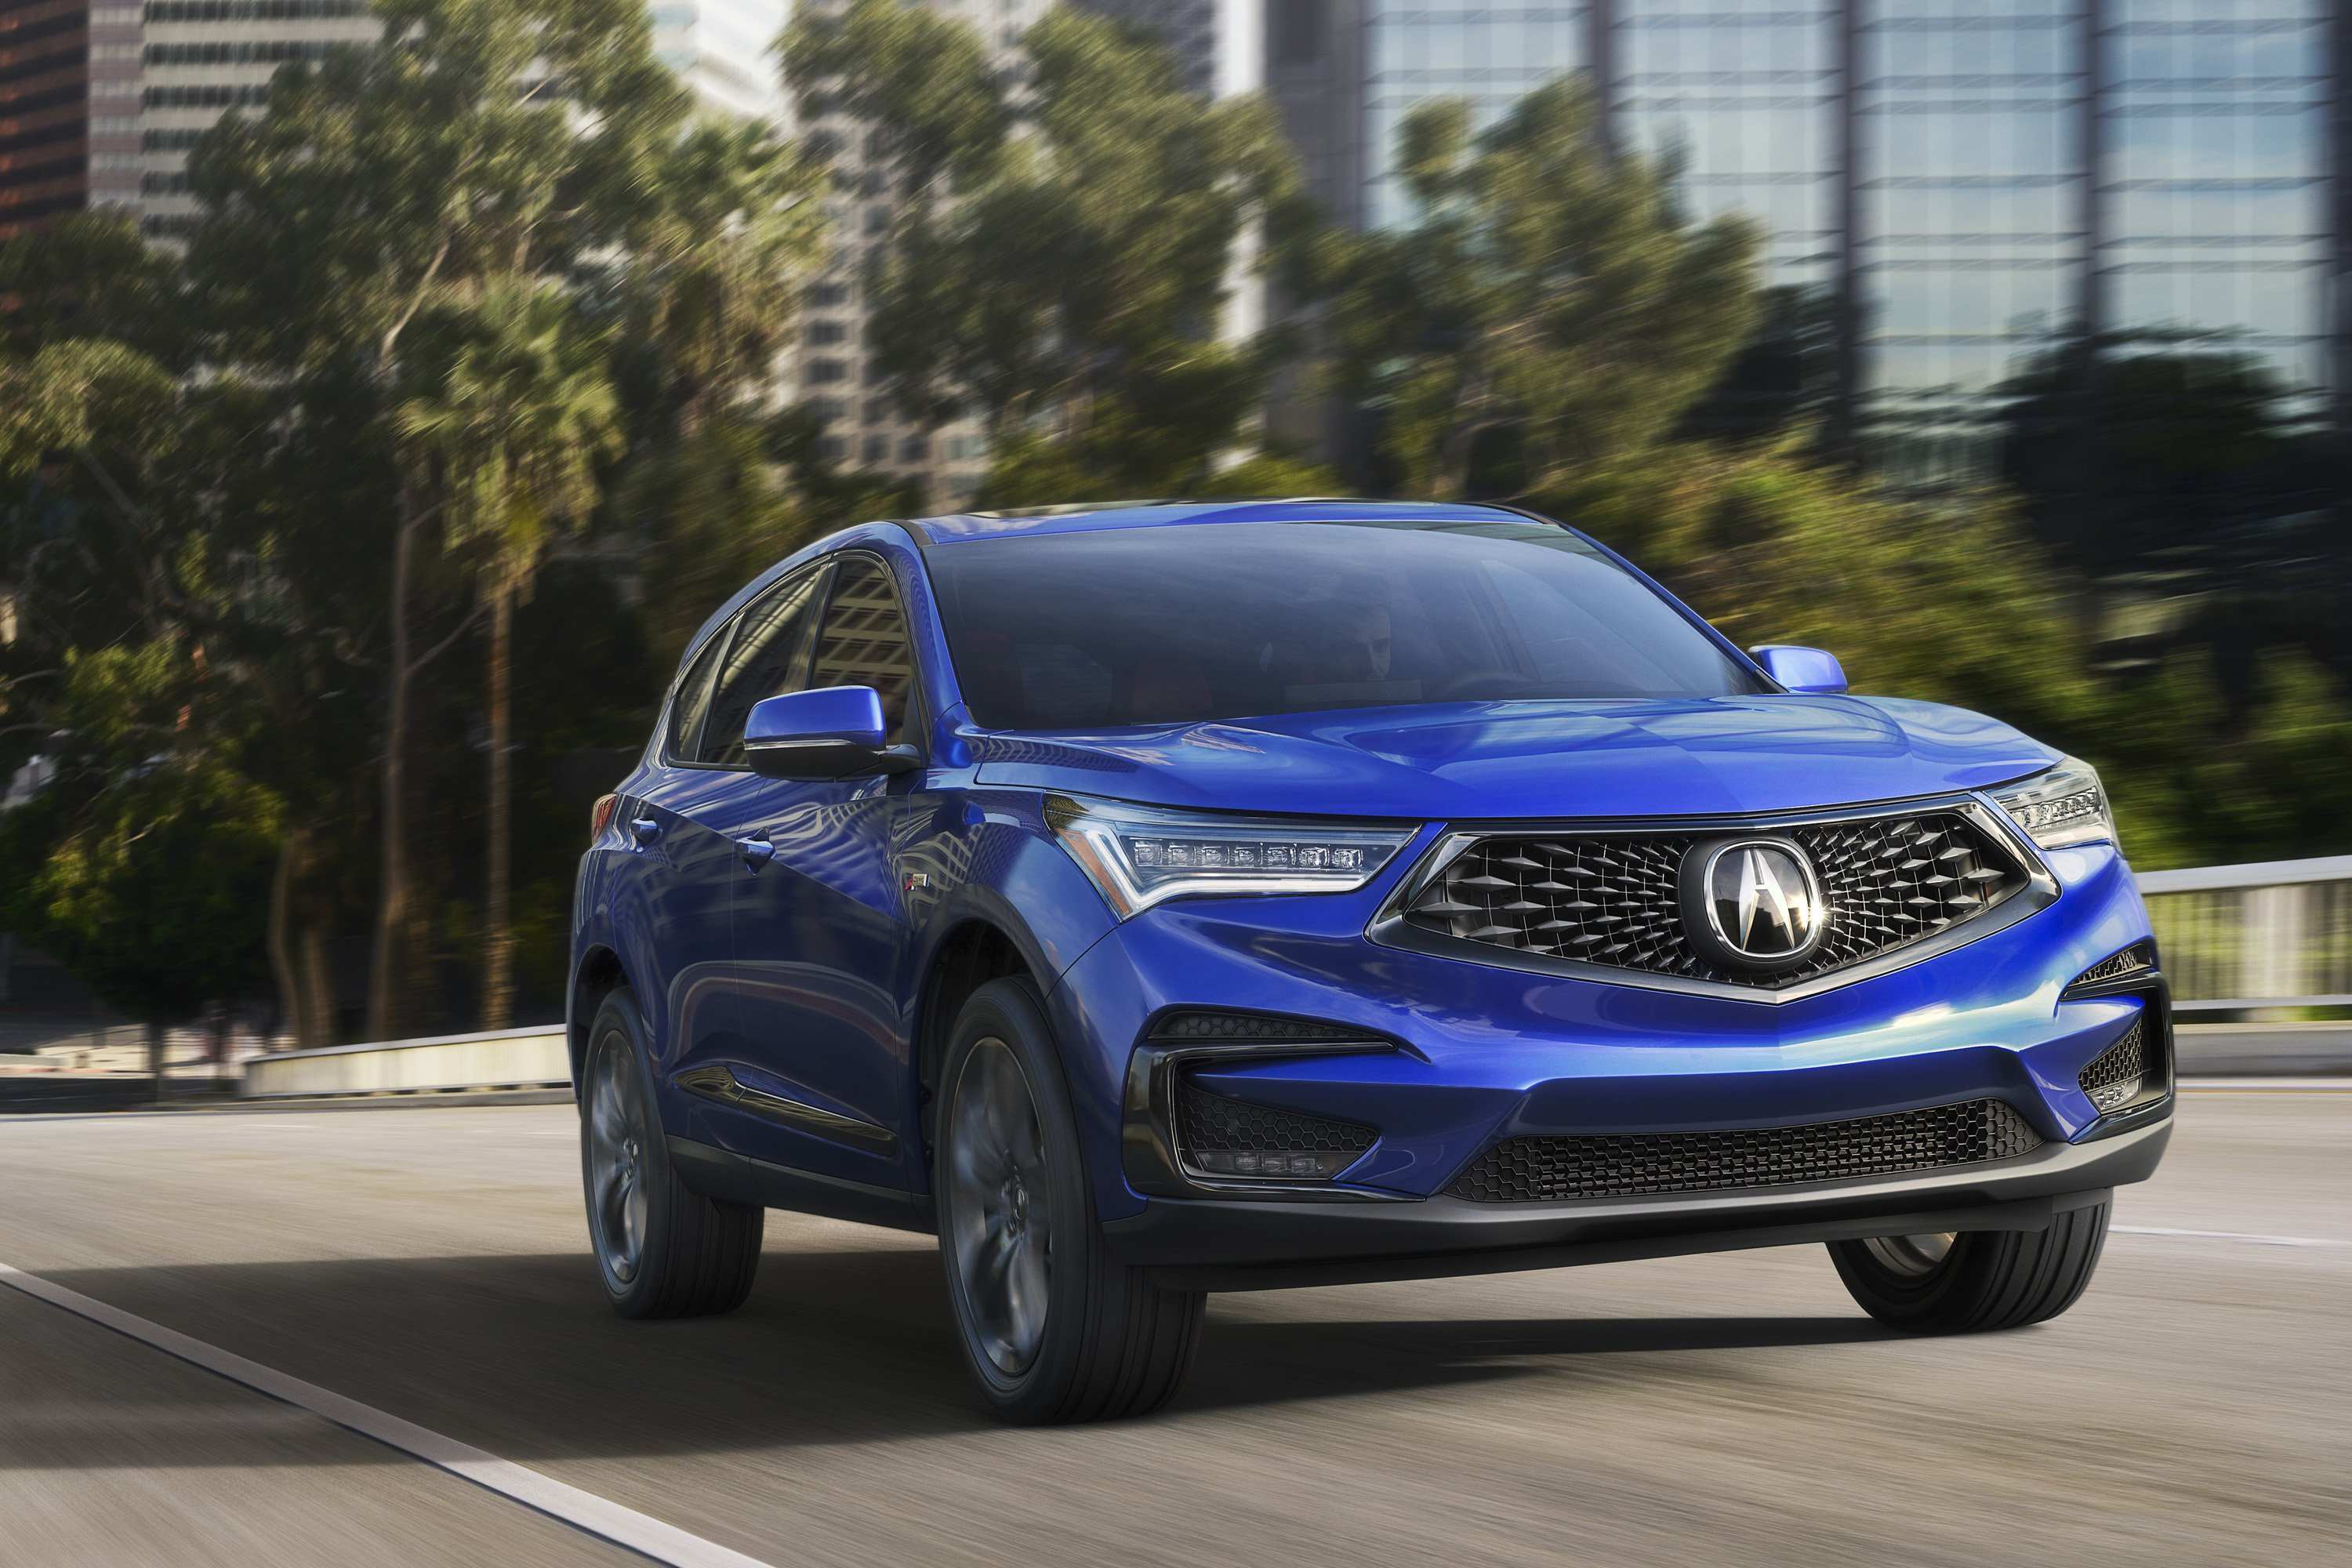 73 New 2019 Acura Rdx Hybrid Ratings with 2019 Acura Rdx Hybrid